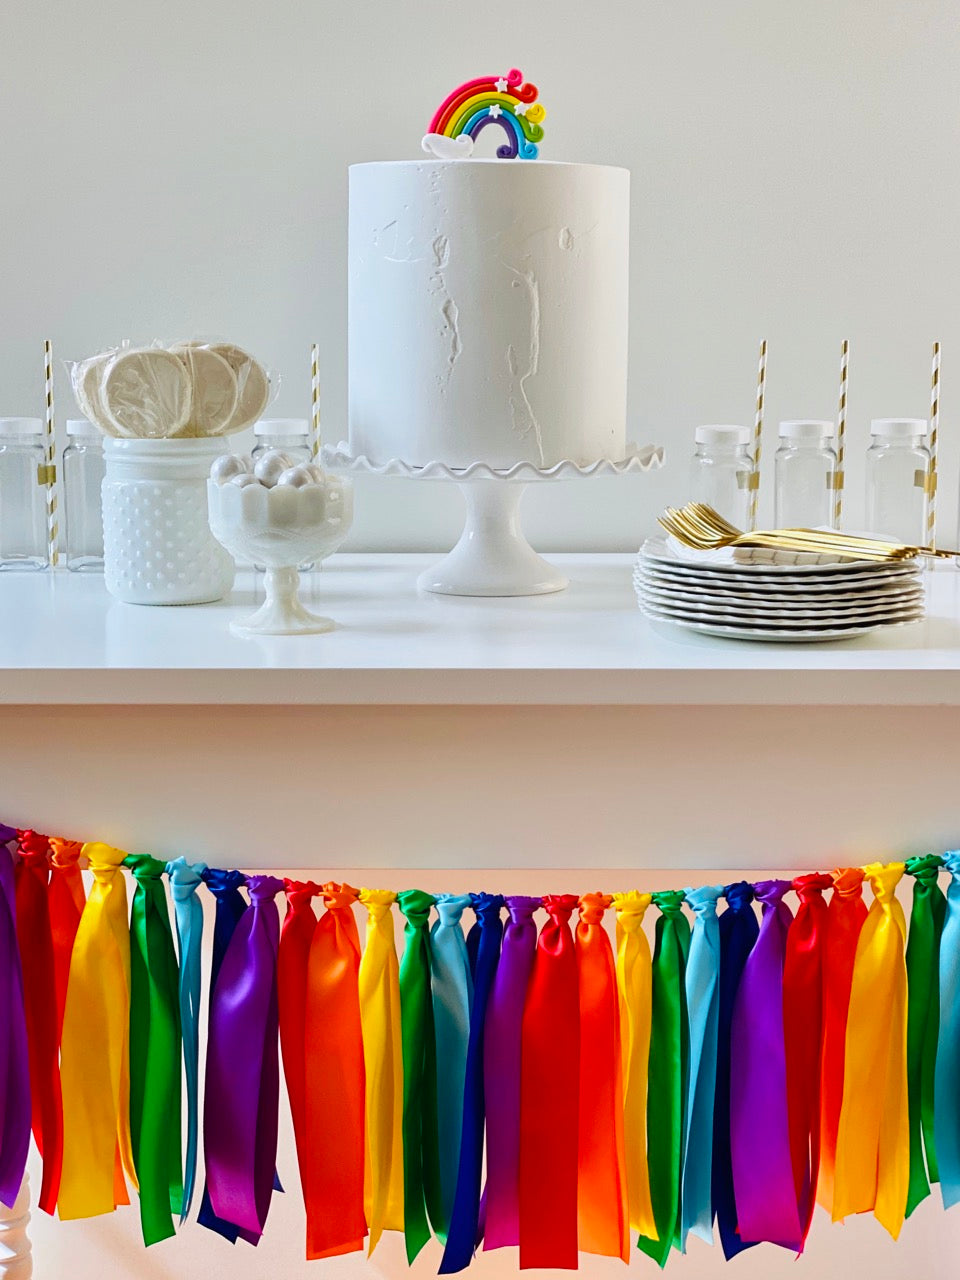 Rainbow Ribbon Bunting - FREE Shipping